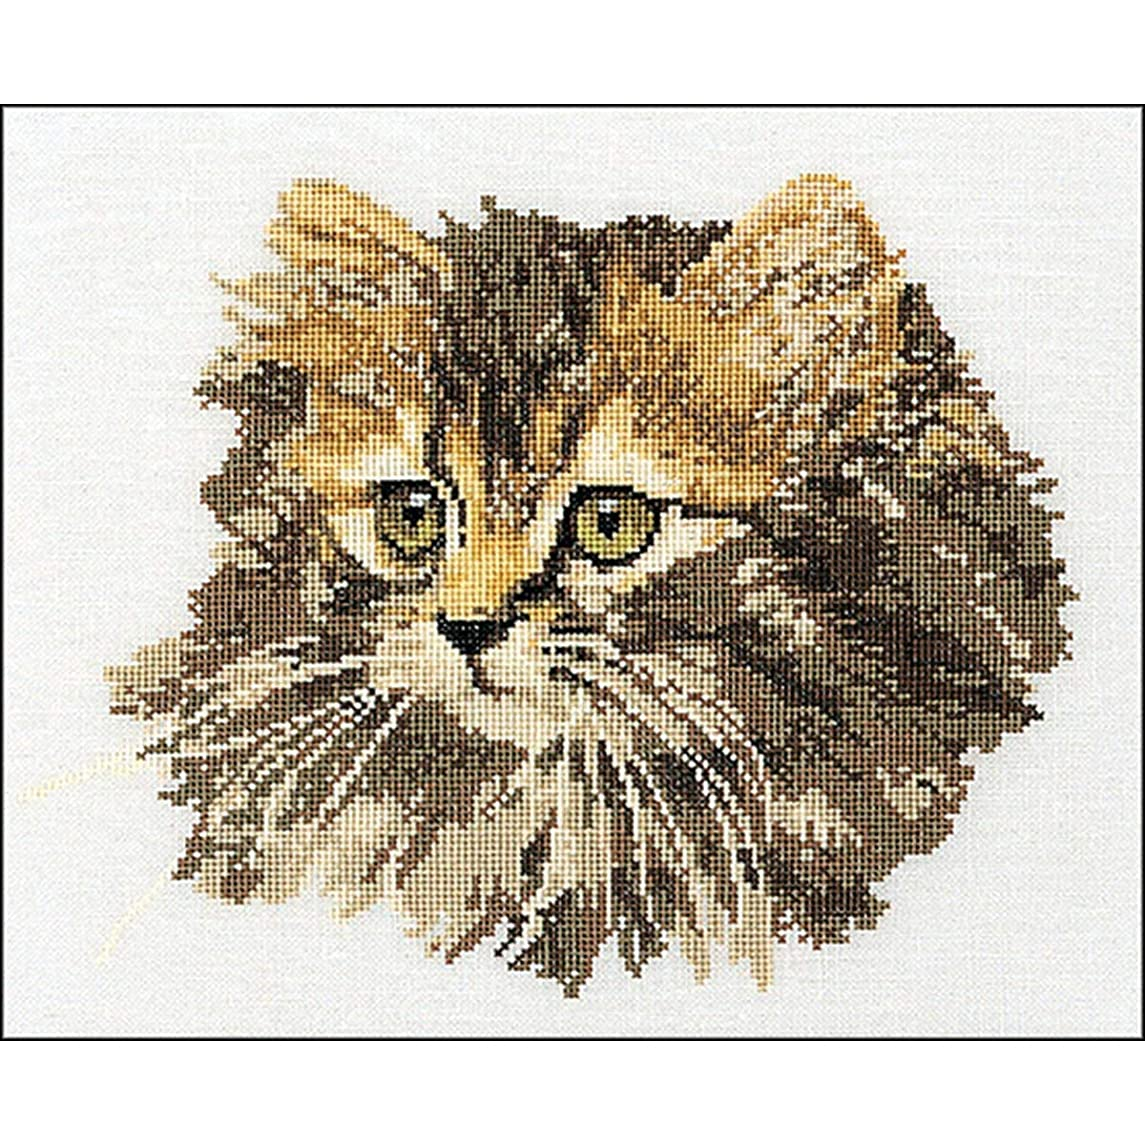 Thea Gouverneur 930A Long Haired Brown Cat on 18 Count Aida, Counted Cross Stitch Kit, 11.8-Inch-by-15.7-Inch